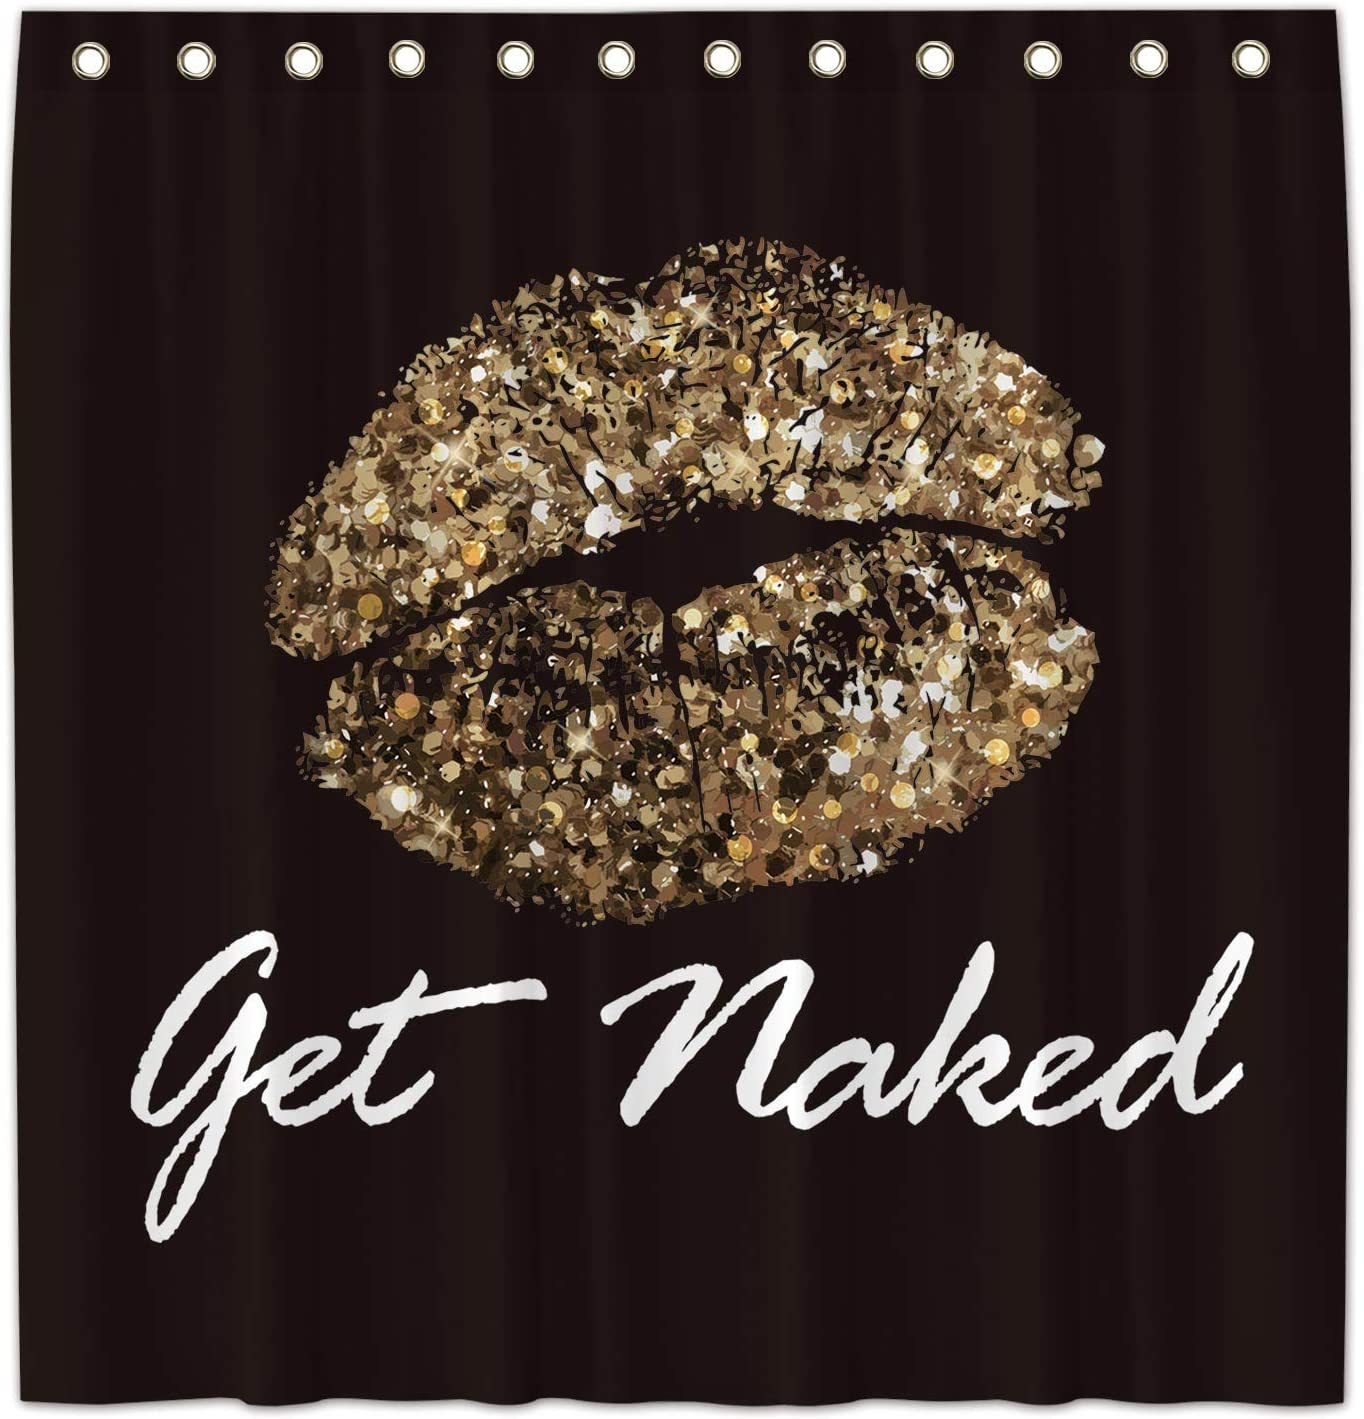 Allenjoy 72x72 Inch Golden Sexy Lips Get Naked Shower Curtains for Bathroom Sets Love Kiss Home Bath Decors Decorations Customizable Durable Waterproof Fabric Machine Washable Curtains with 12 Hooks